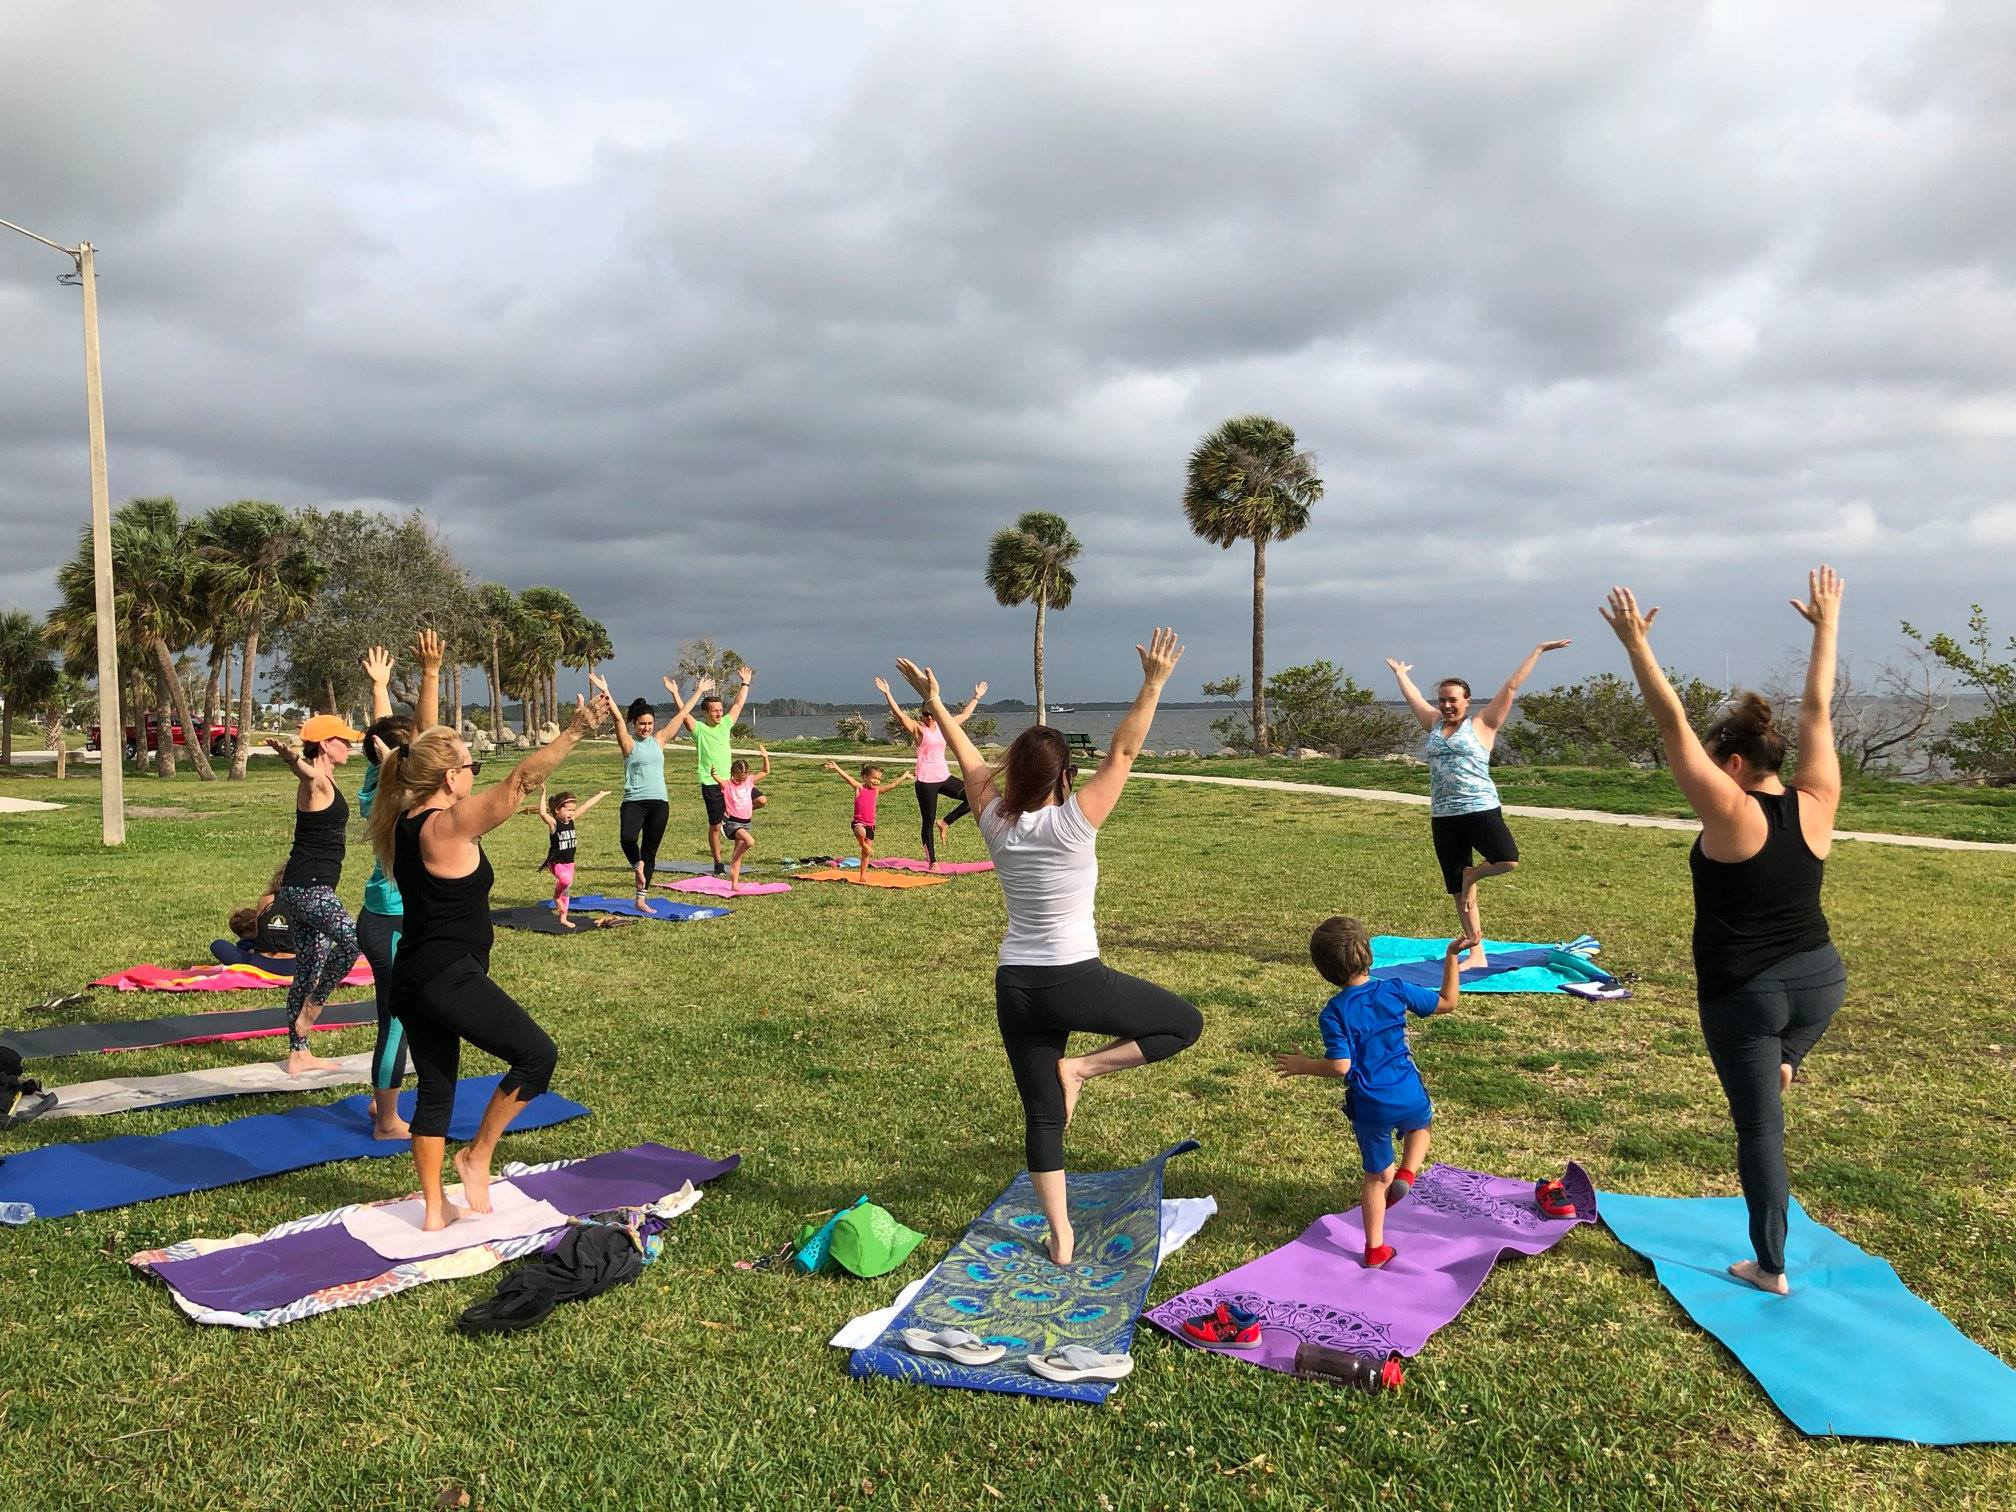 Titusville Yoga in the Park Sundays 9AM Sponsored by The Titusville Yoga Loft at Sand Point Park 101 N Washington Ave, Titusville, Florida 13.jpg